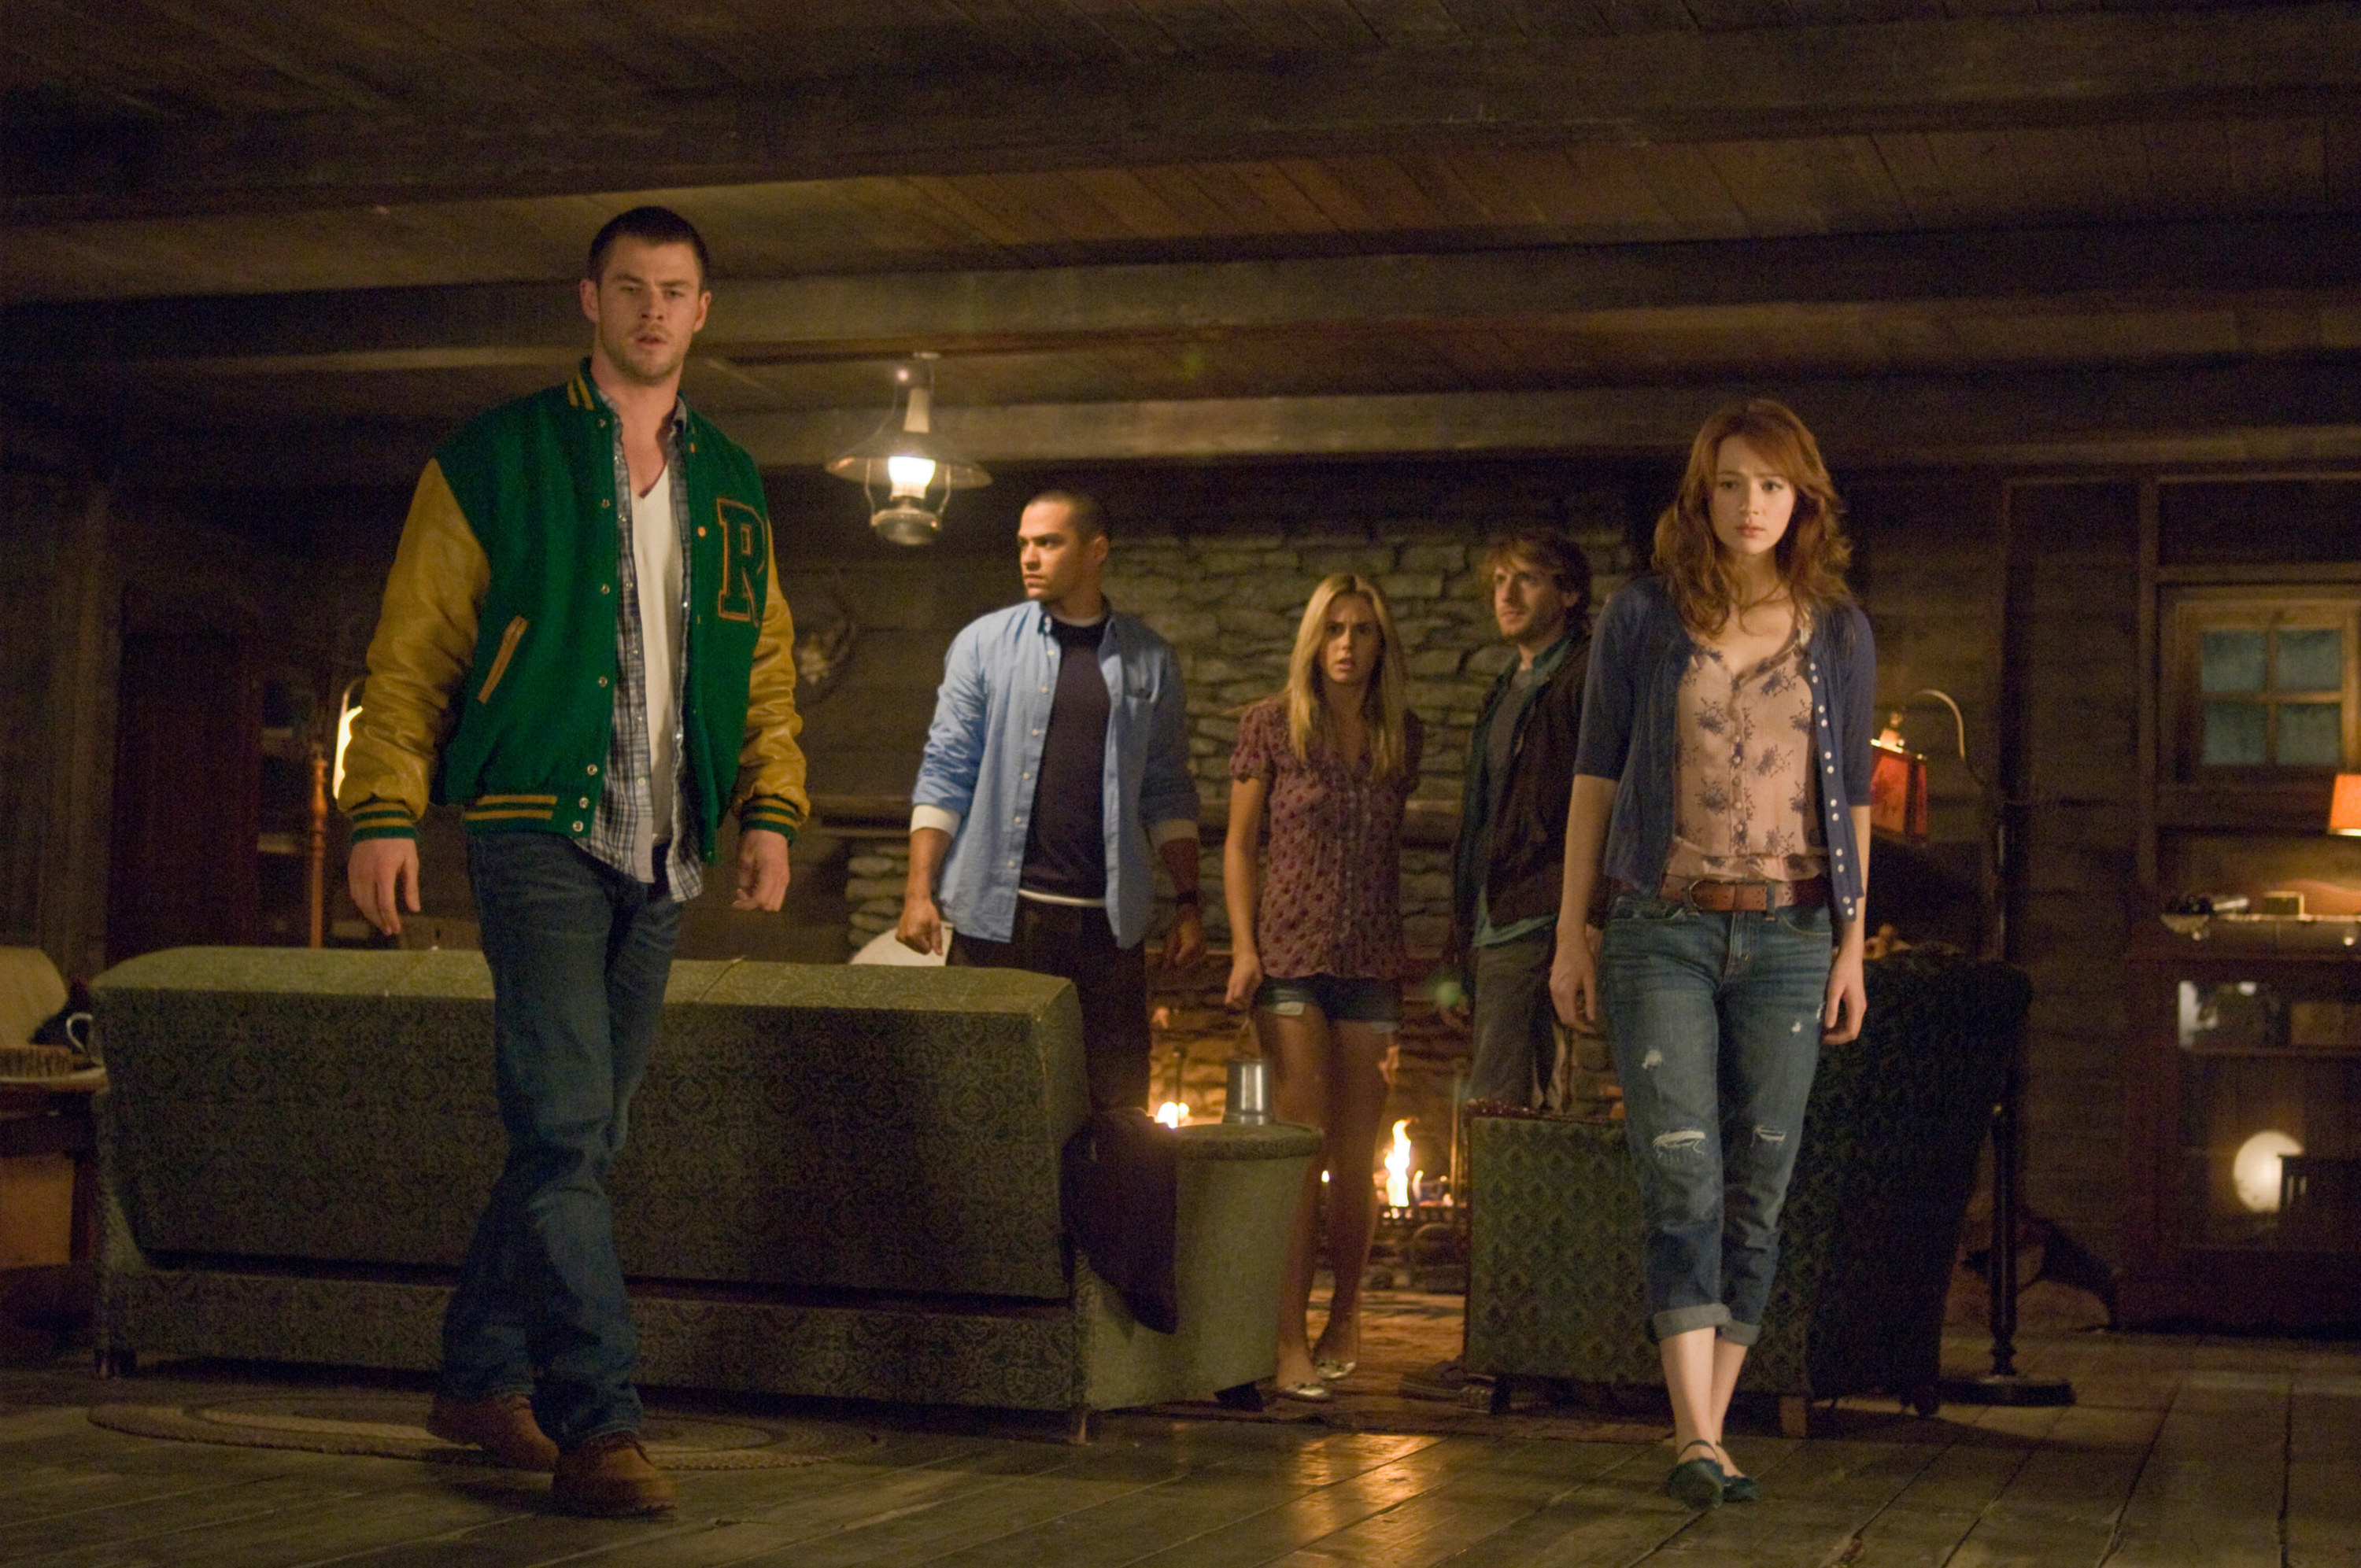 College students Dana, Jules, Curt, Holden, and Marty look around in The Cabin in the Woods